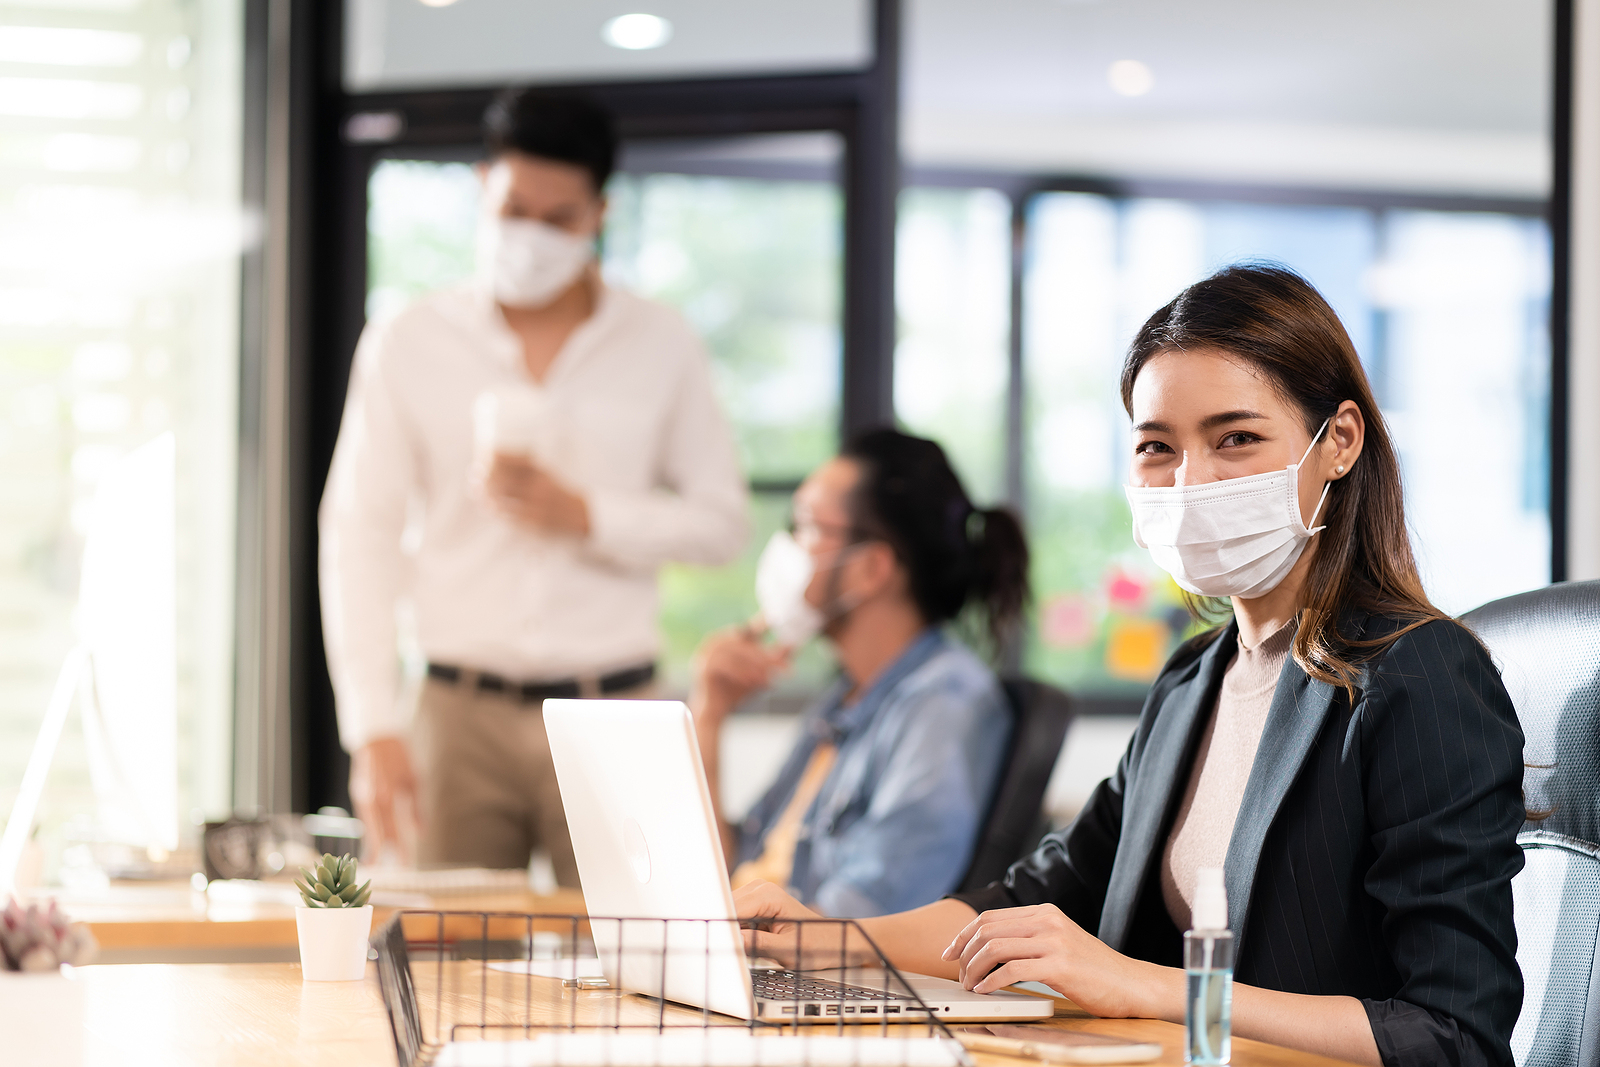 Areas Prospering in the Post-Pandemic Job Market